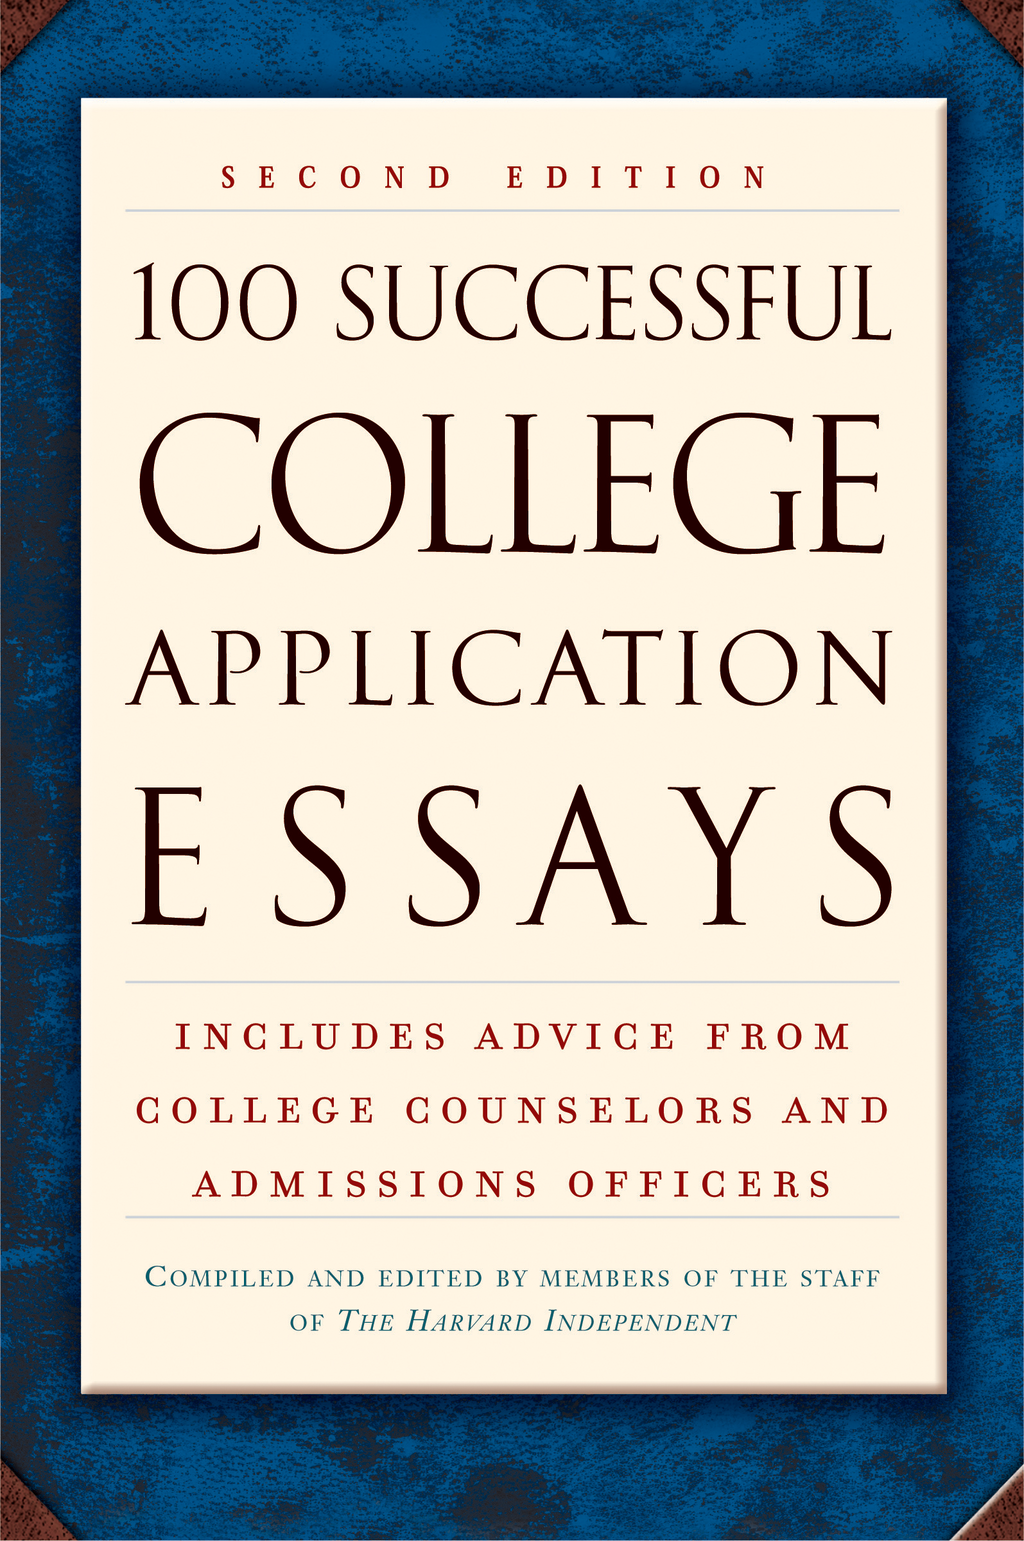 100 Successful College Application Essays (Second Edition) By: Harvard Independent